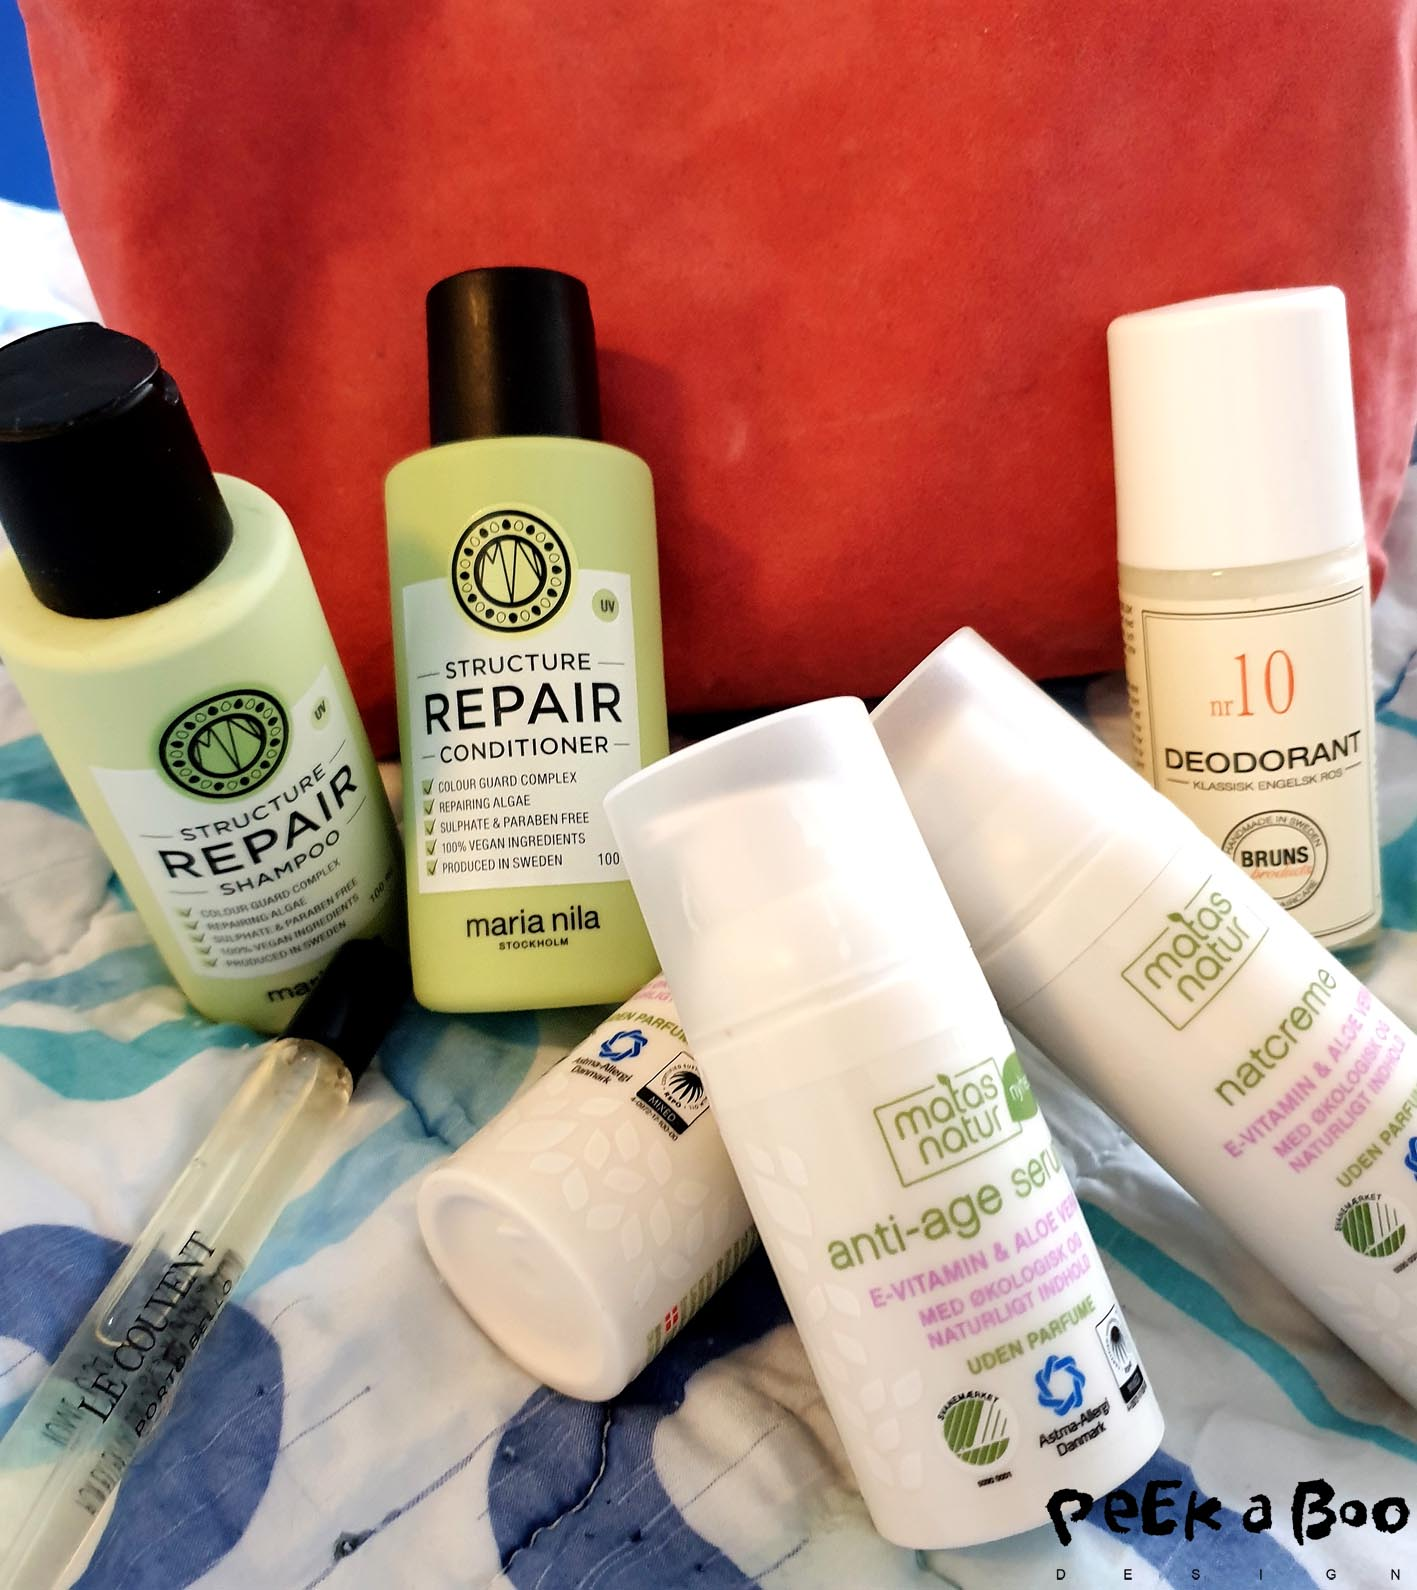 When I pack my toiletbag it comes with travelsize shampoo and conditioner from Maria Nila, 24 hour cream, nightcream and serum from Matas Natur and a deo roll on from Bruns Produkter. And I also brought a lovely perfume from le couventdes minimes.